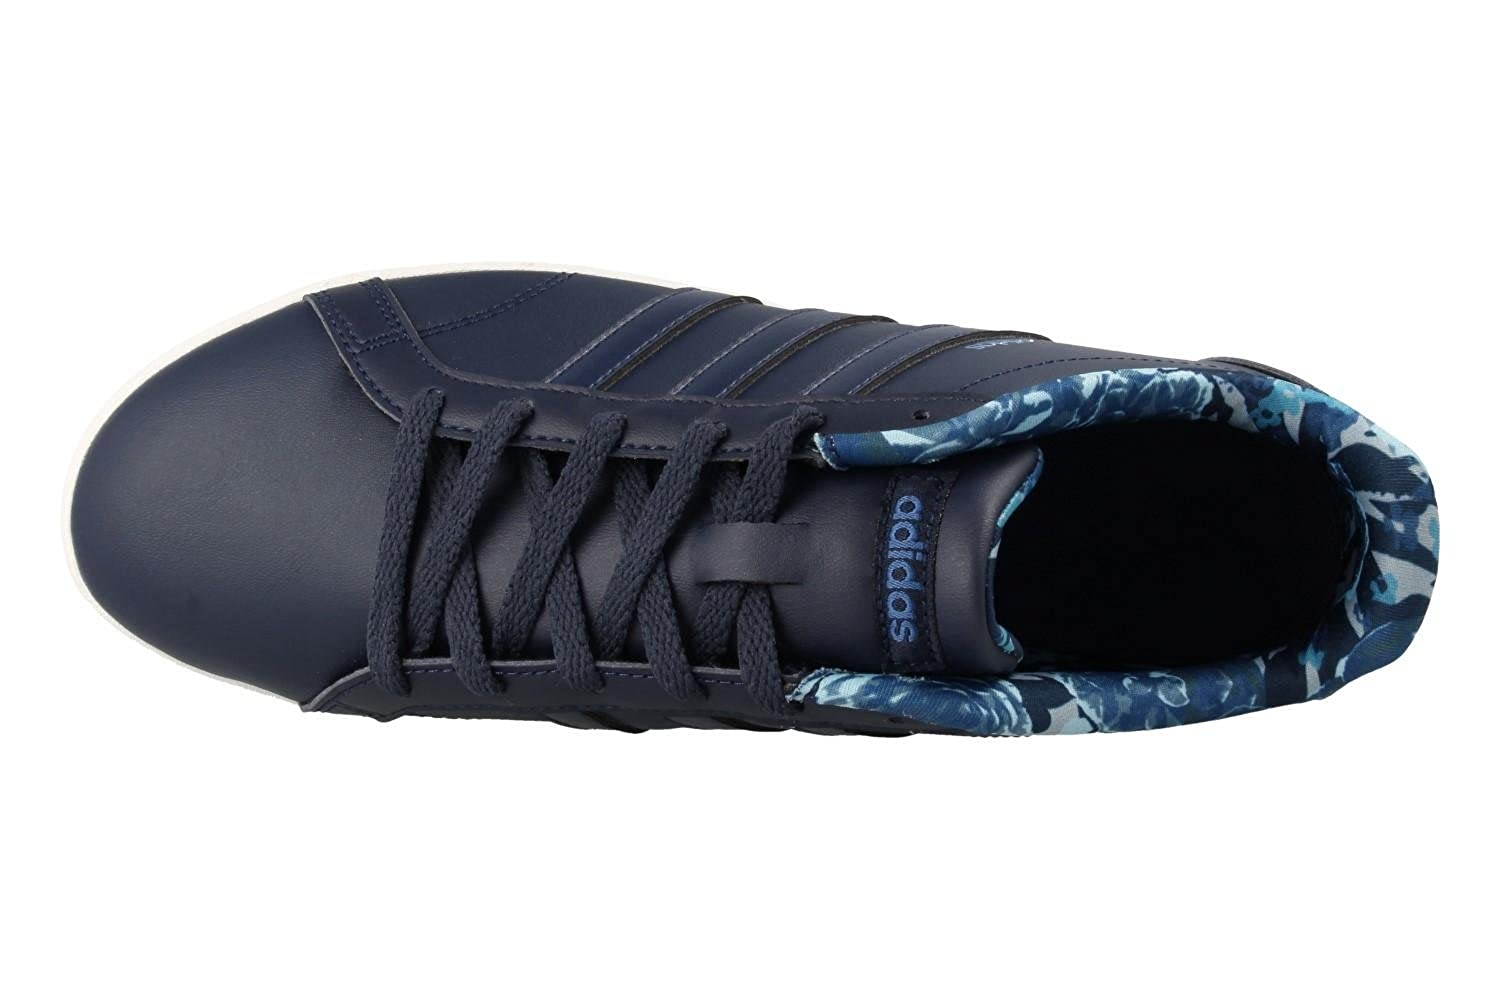 low priced 65603 b224c ADIDAS CHAUSSON CG5760 Coneo MARINO Amazon.fr Chaussures et